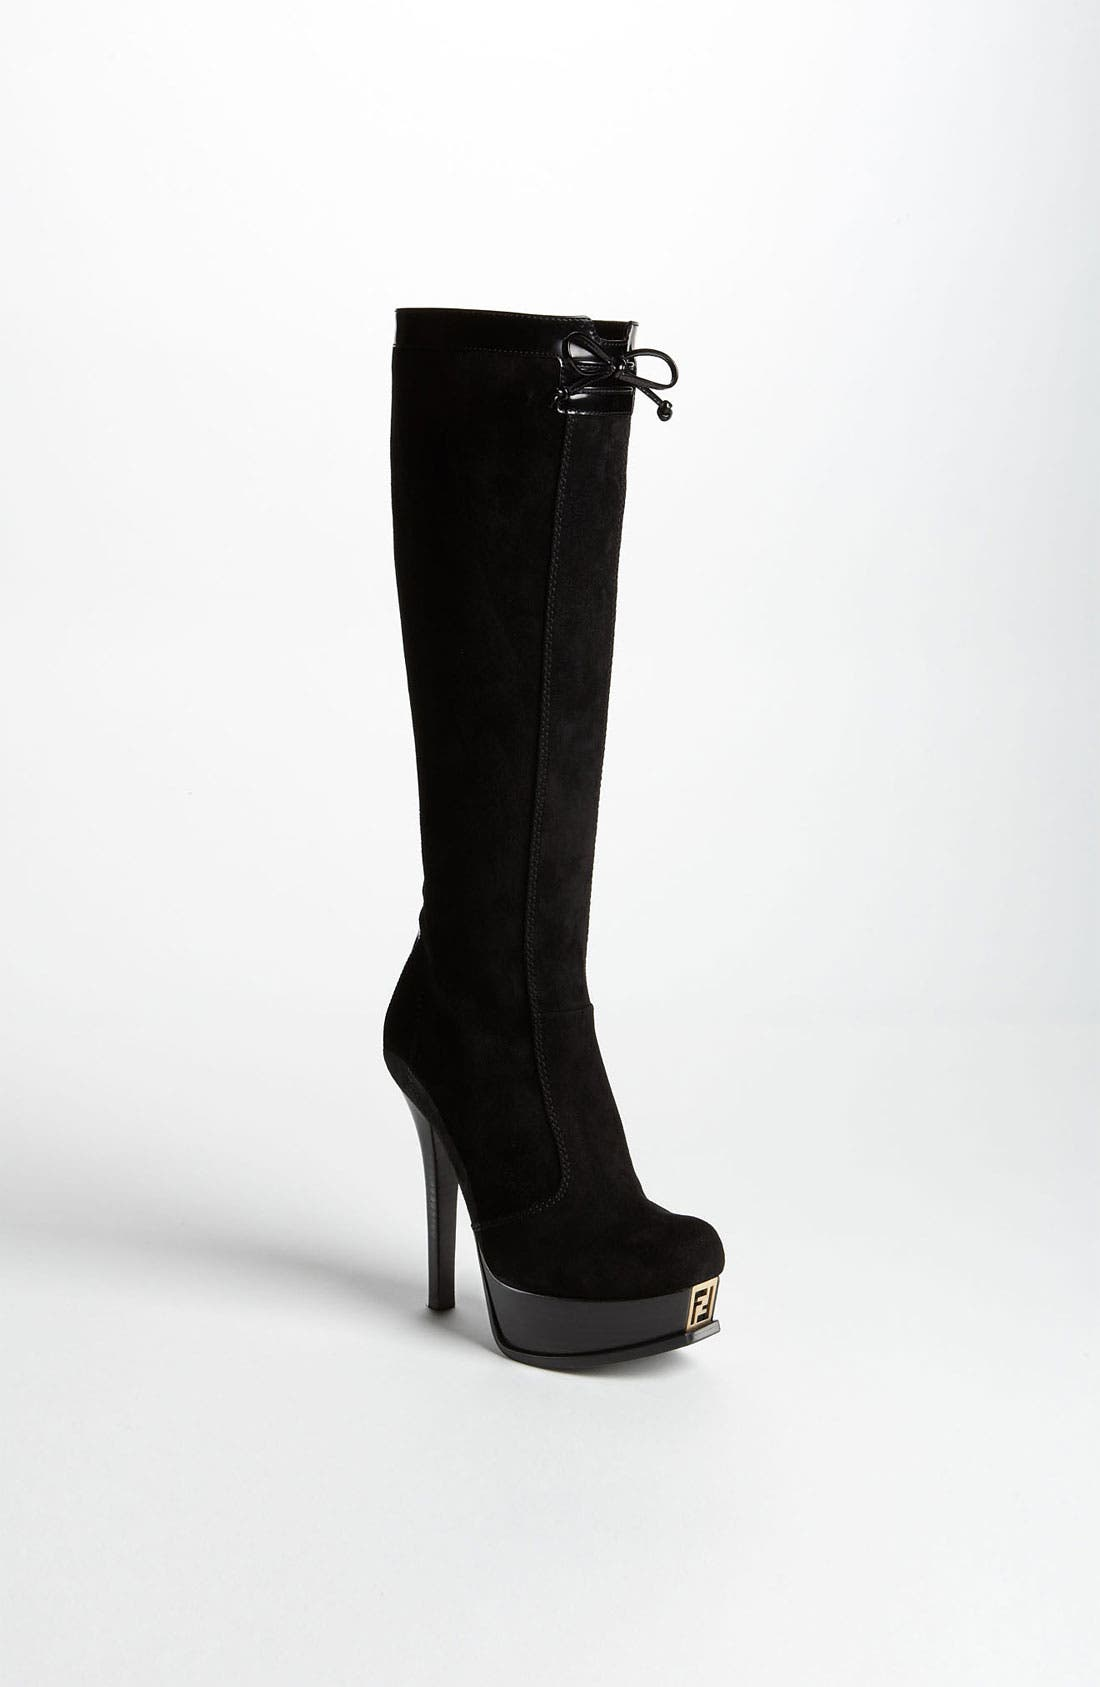 Alternate Image 1 Selected - Fendi 'Fendista' Tall Boot